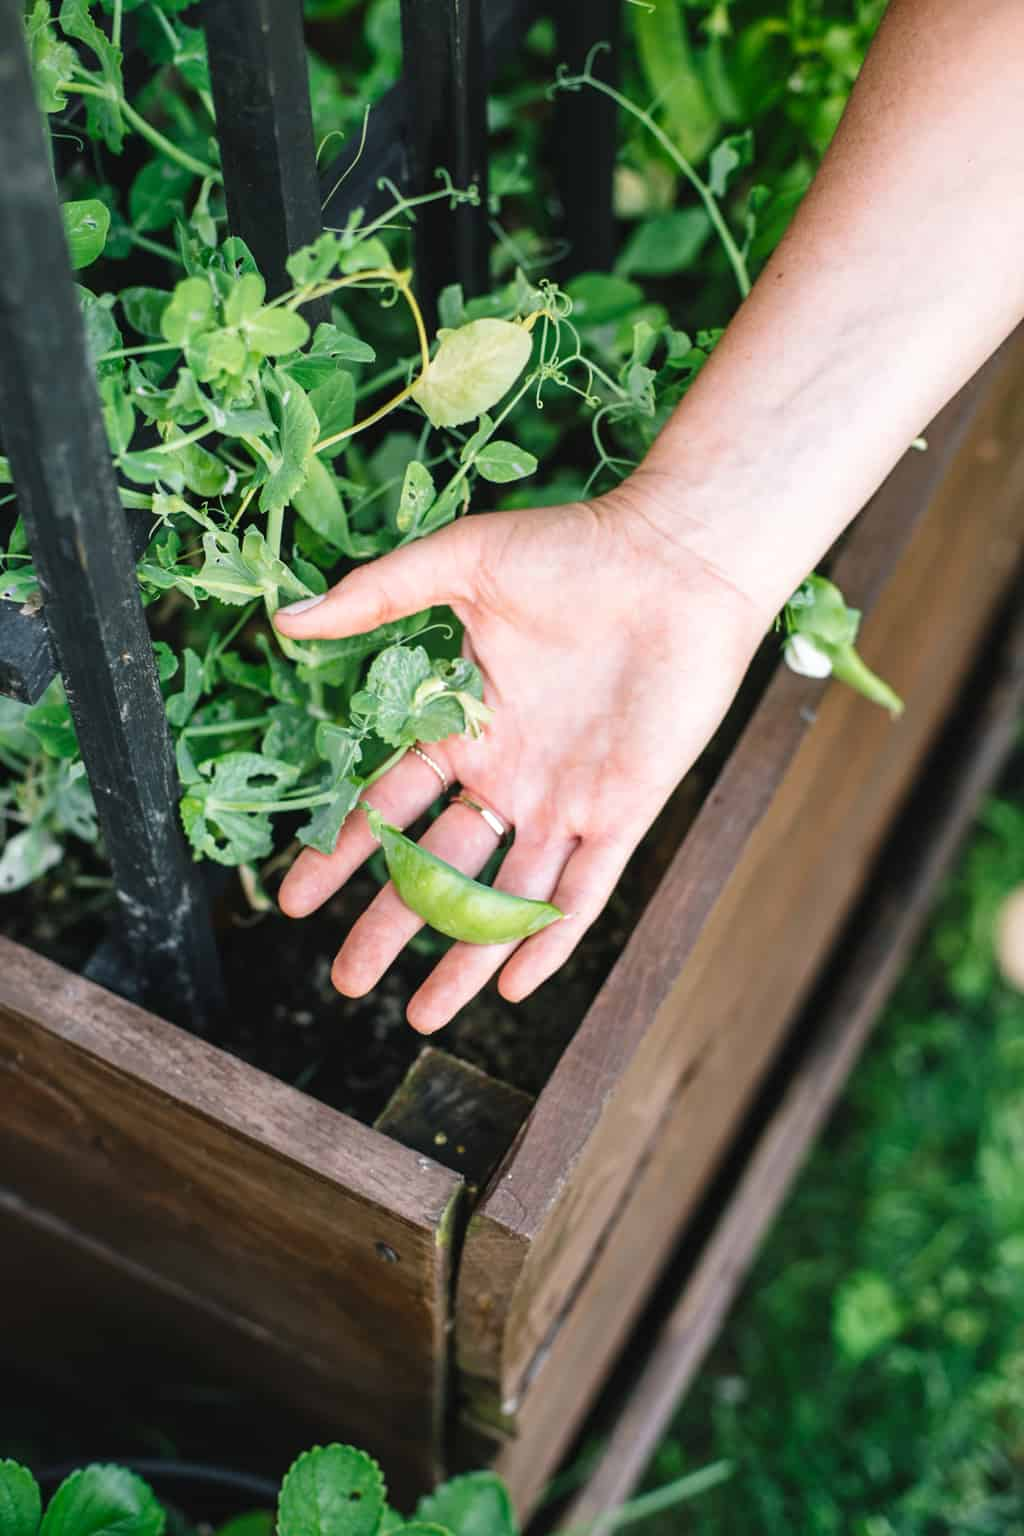 Holding a pea plant in a garden planter.